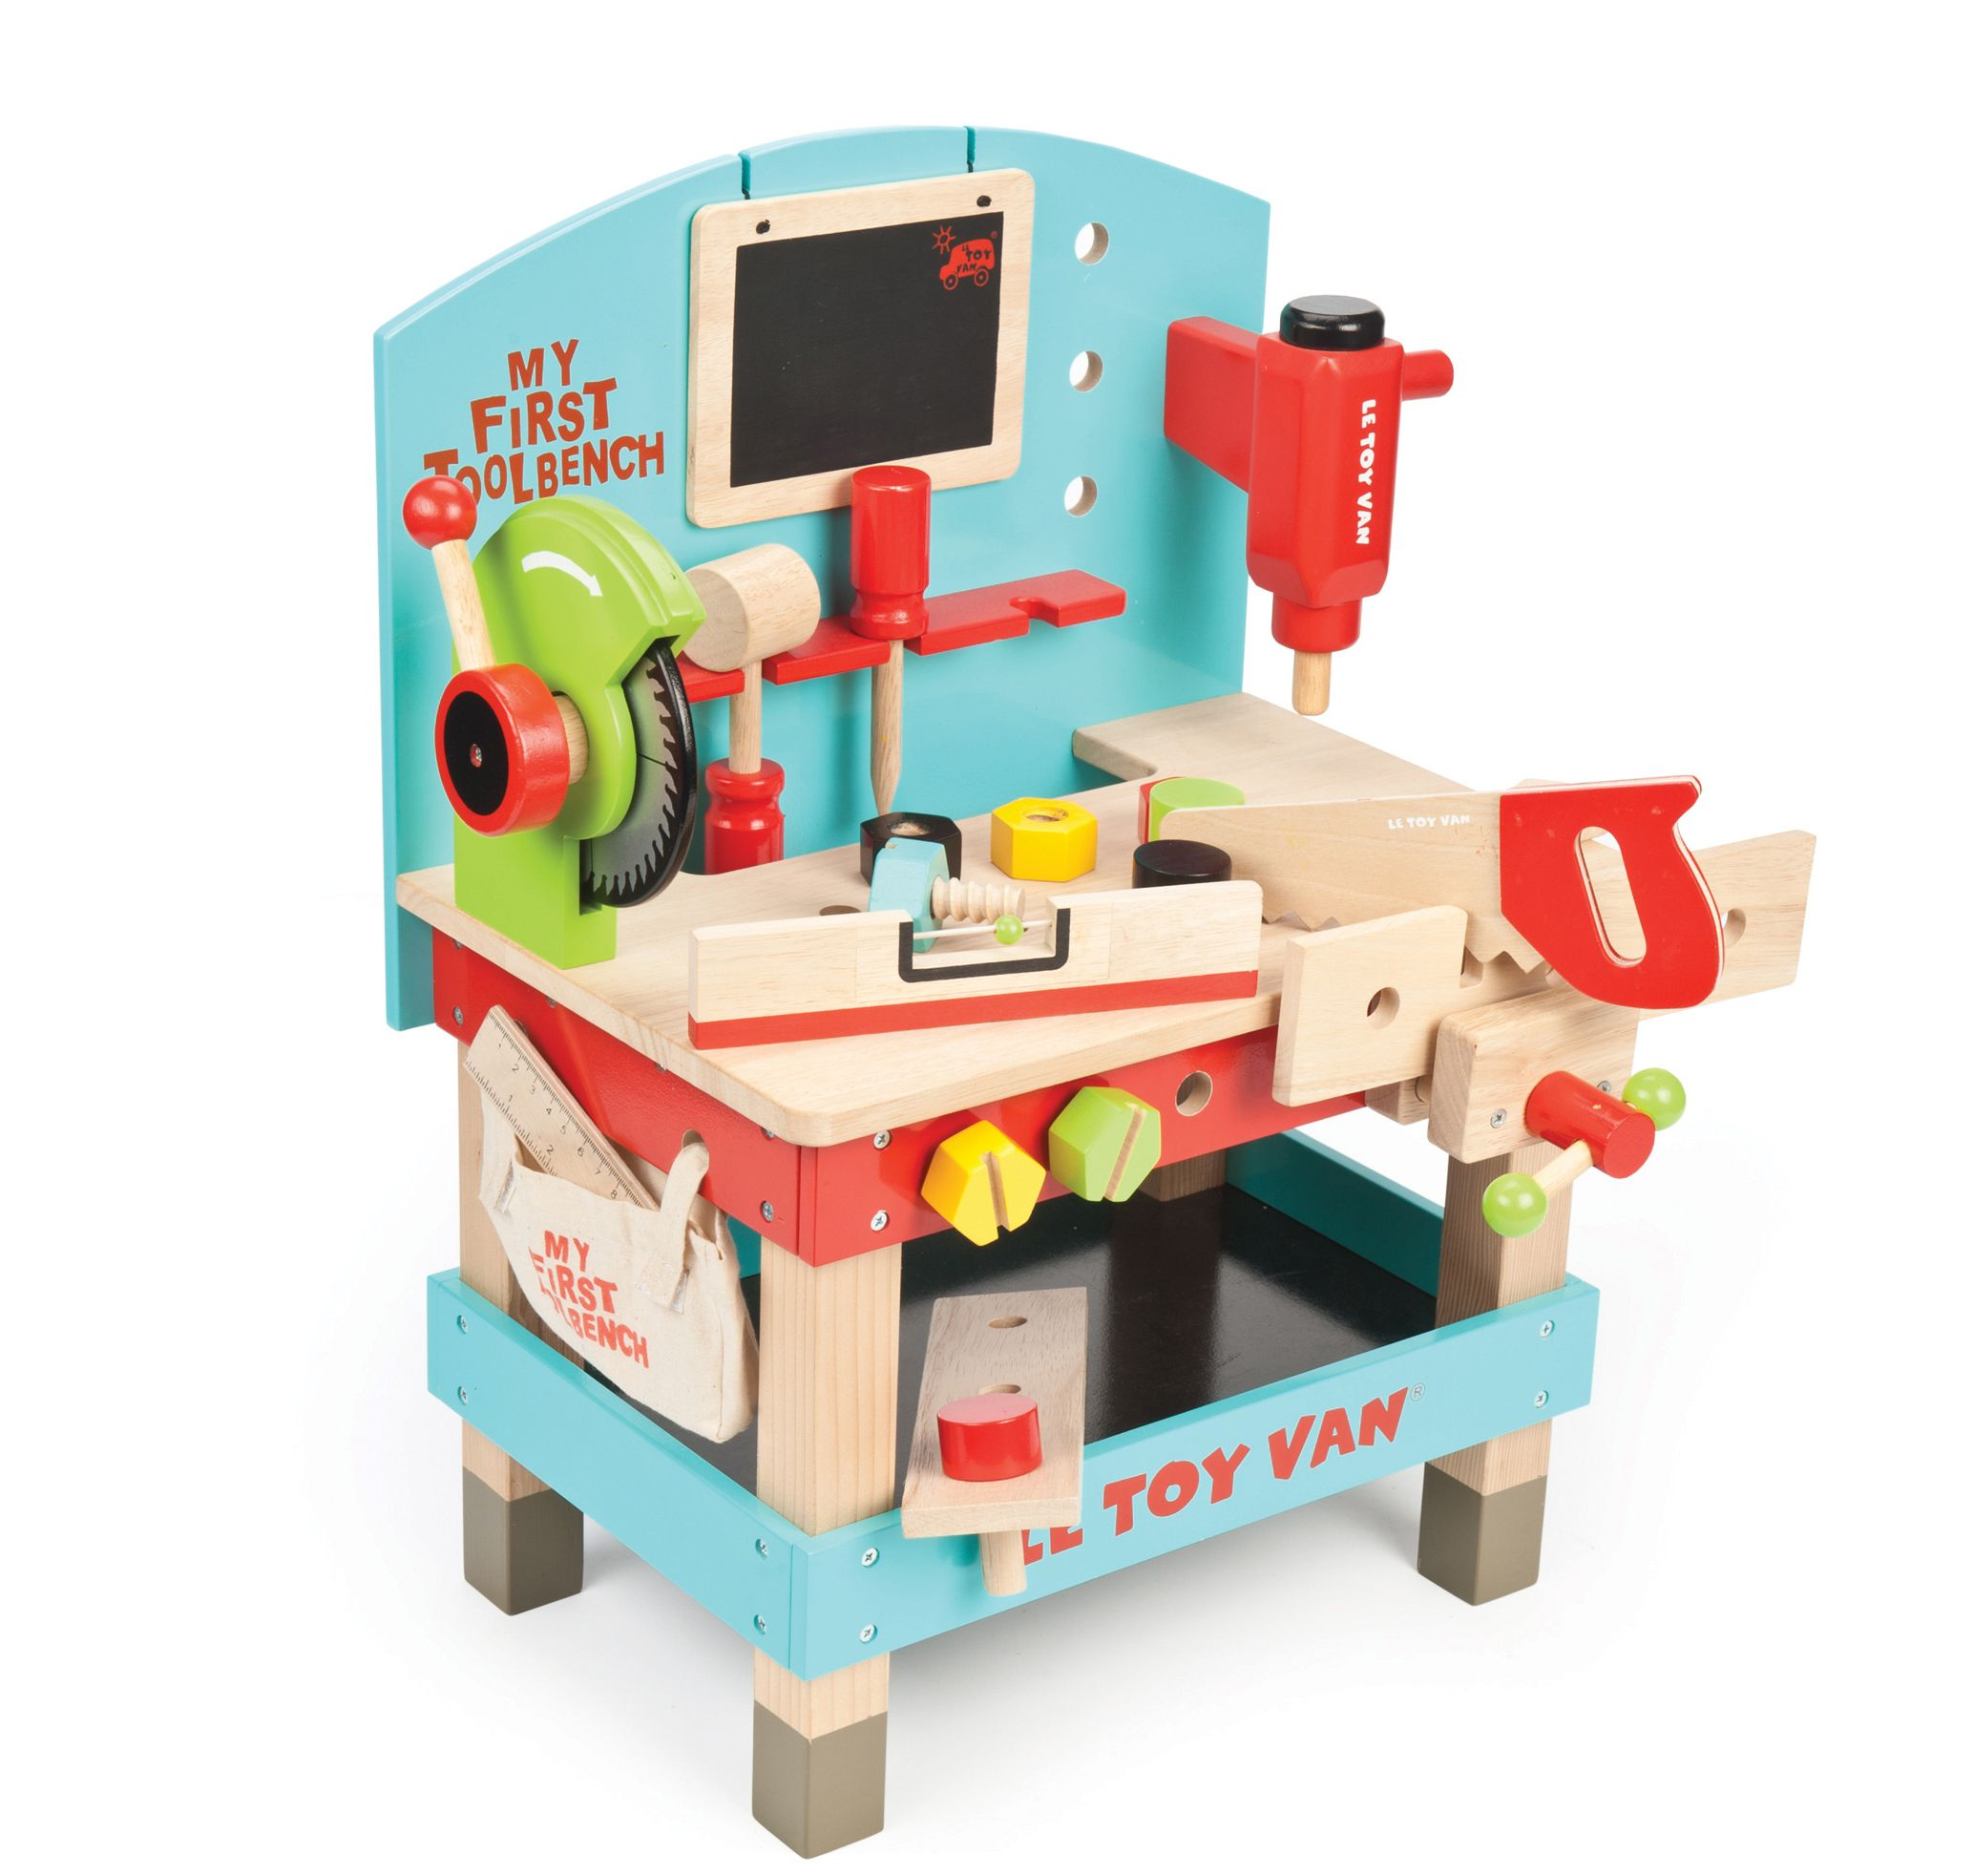 My First Tool Bench In 2020 Kids Wooden Toys Tool Bench Wooden Toys